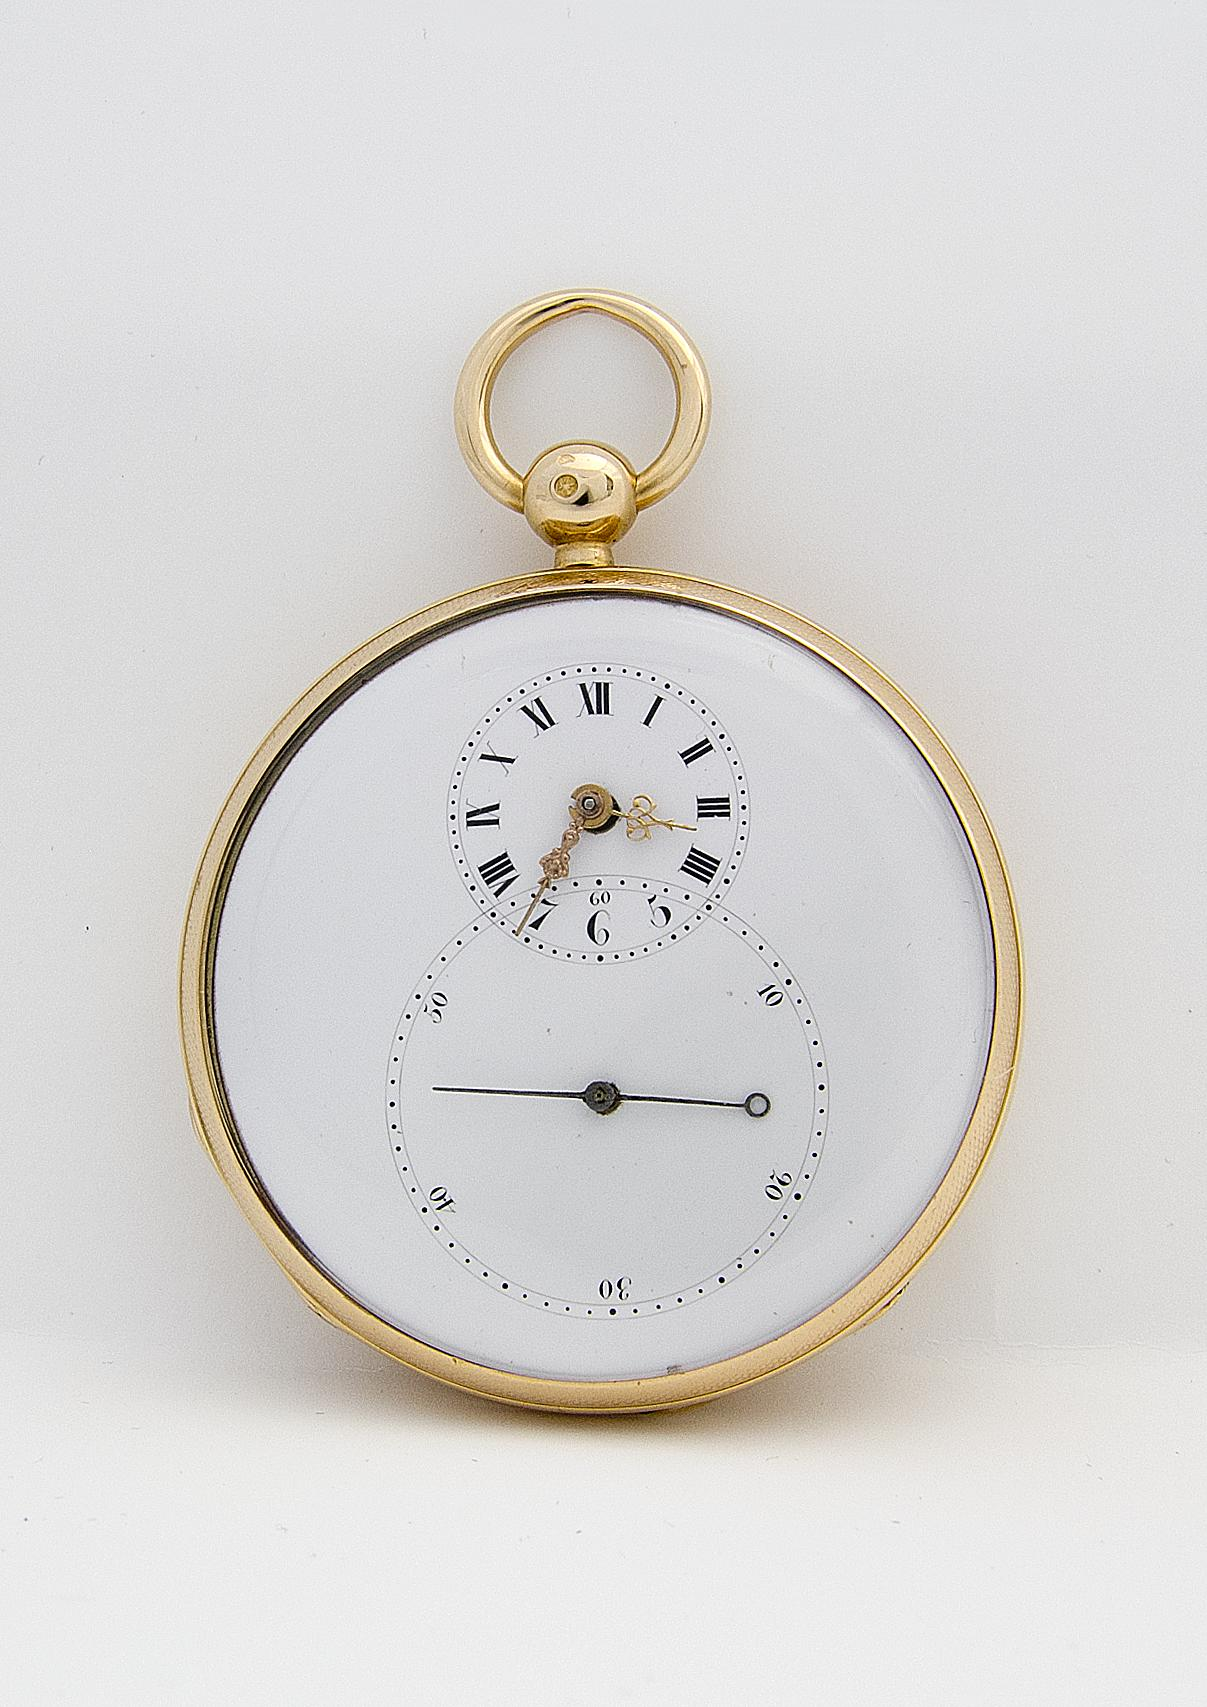 The 1784 pocket watch by Pierre Jaquet-Droz